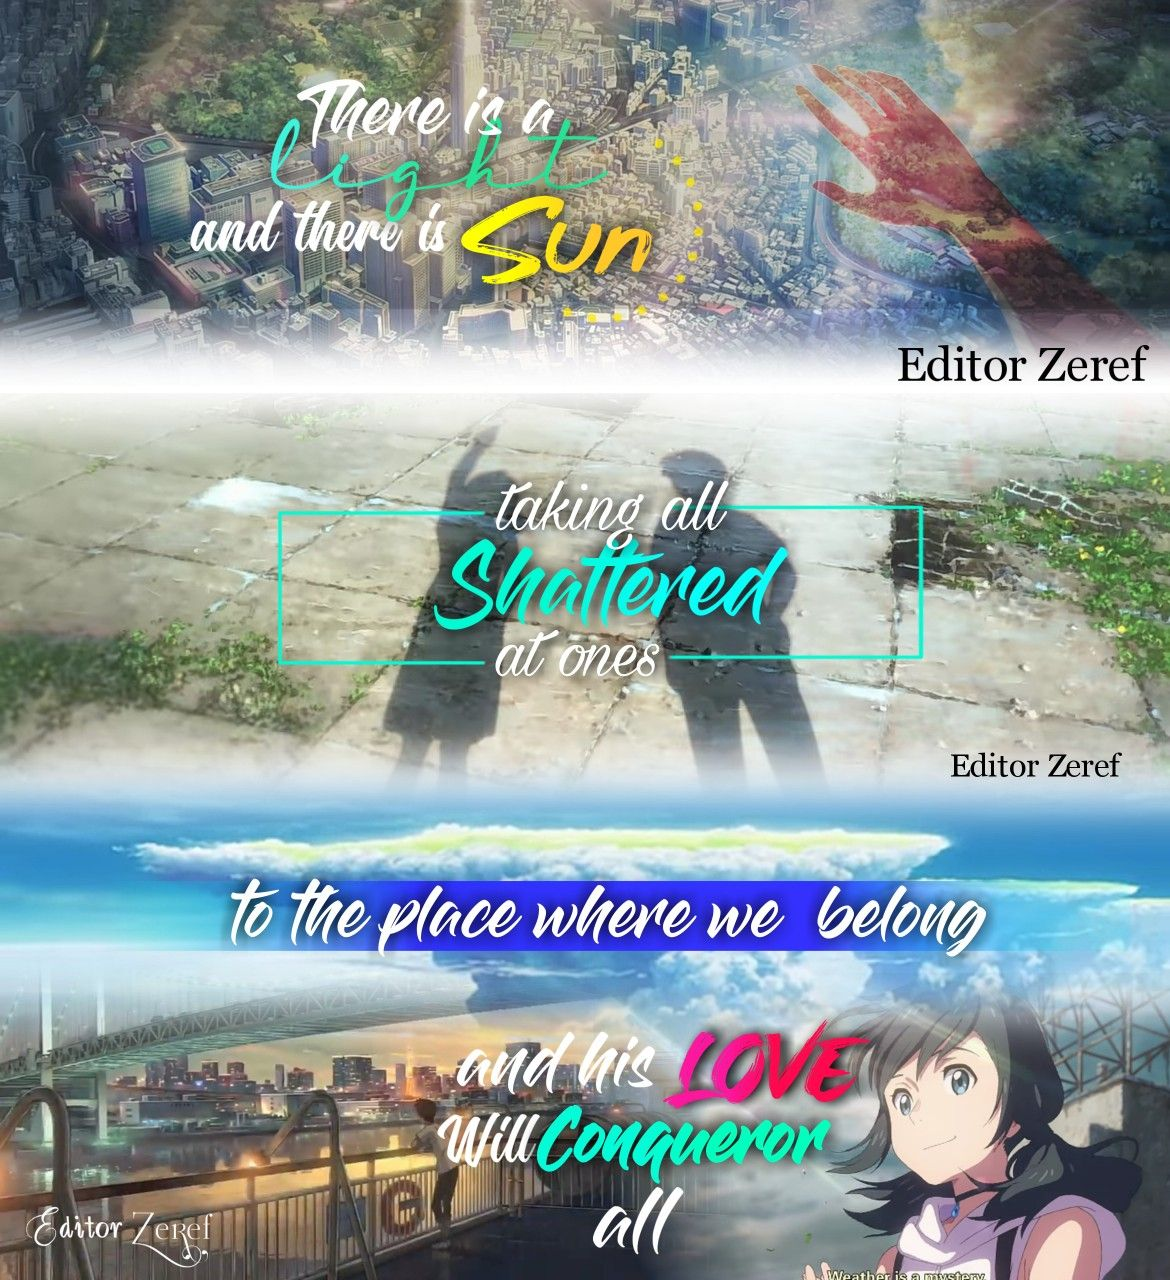 Pin by syafiqah on anime quotes  Anime love quotes, Anime quotes, Anime qoutes